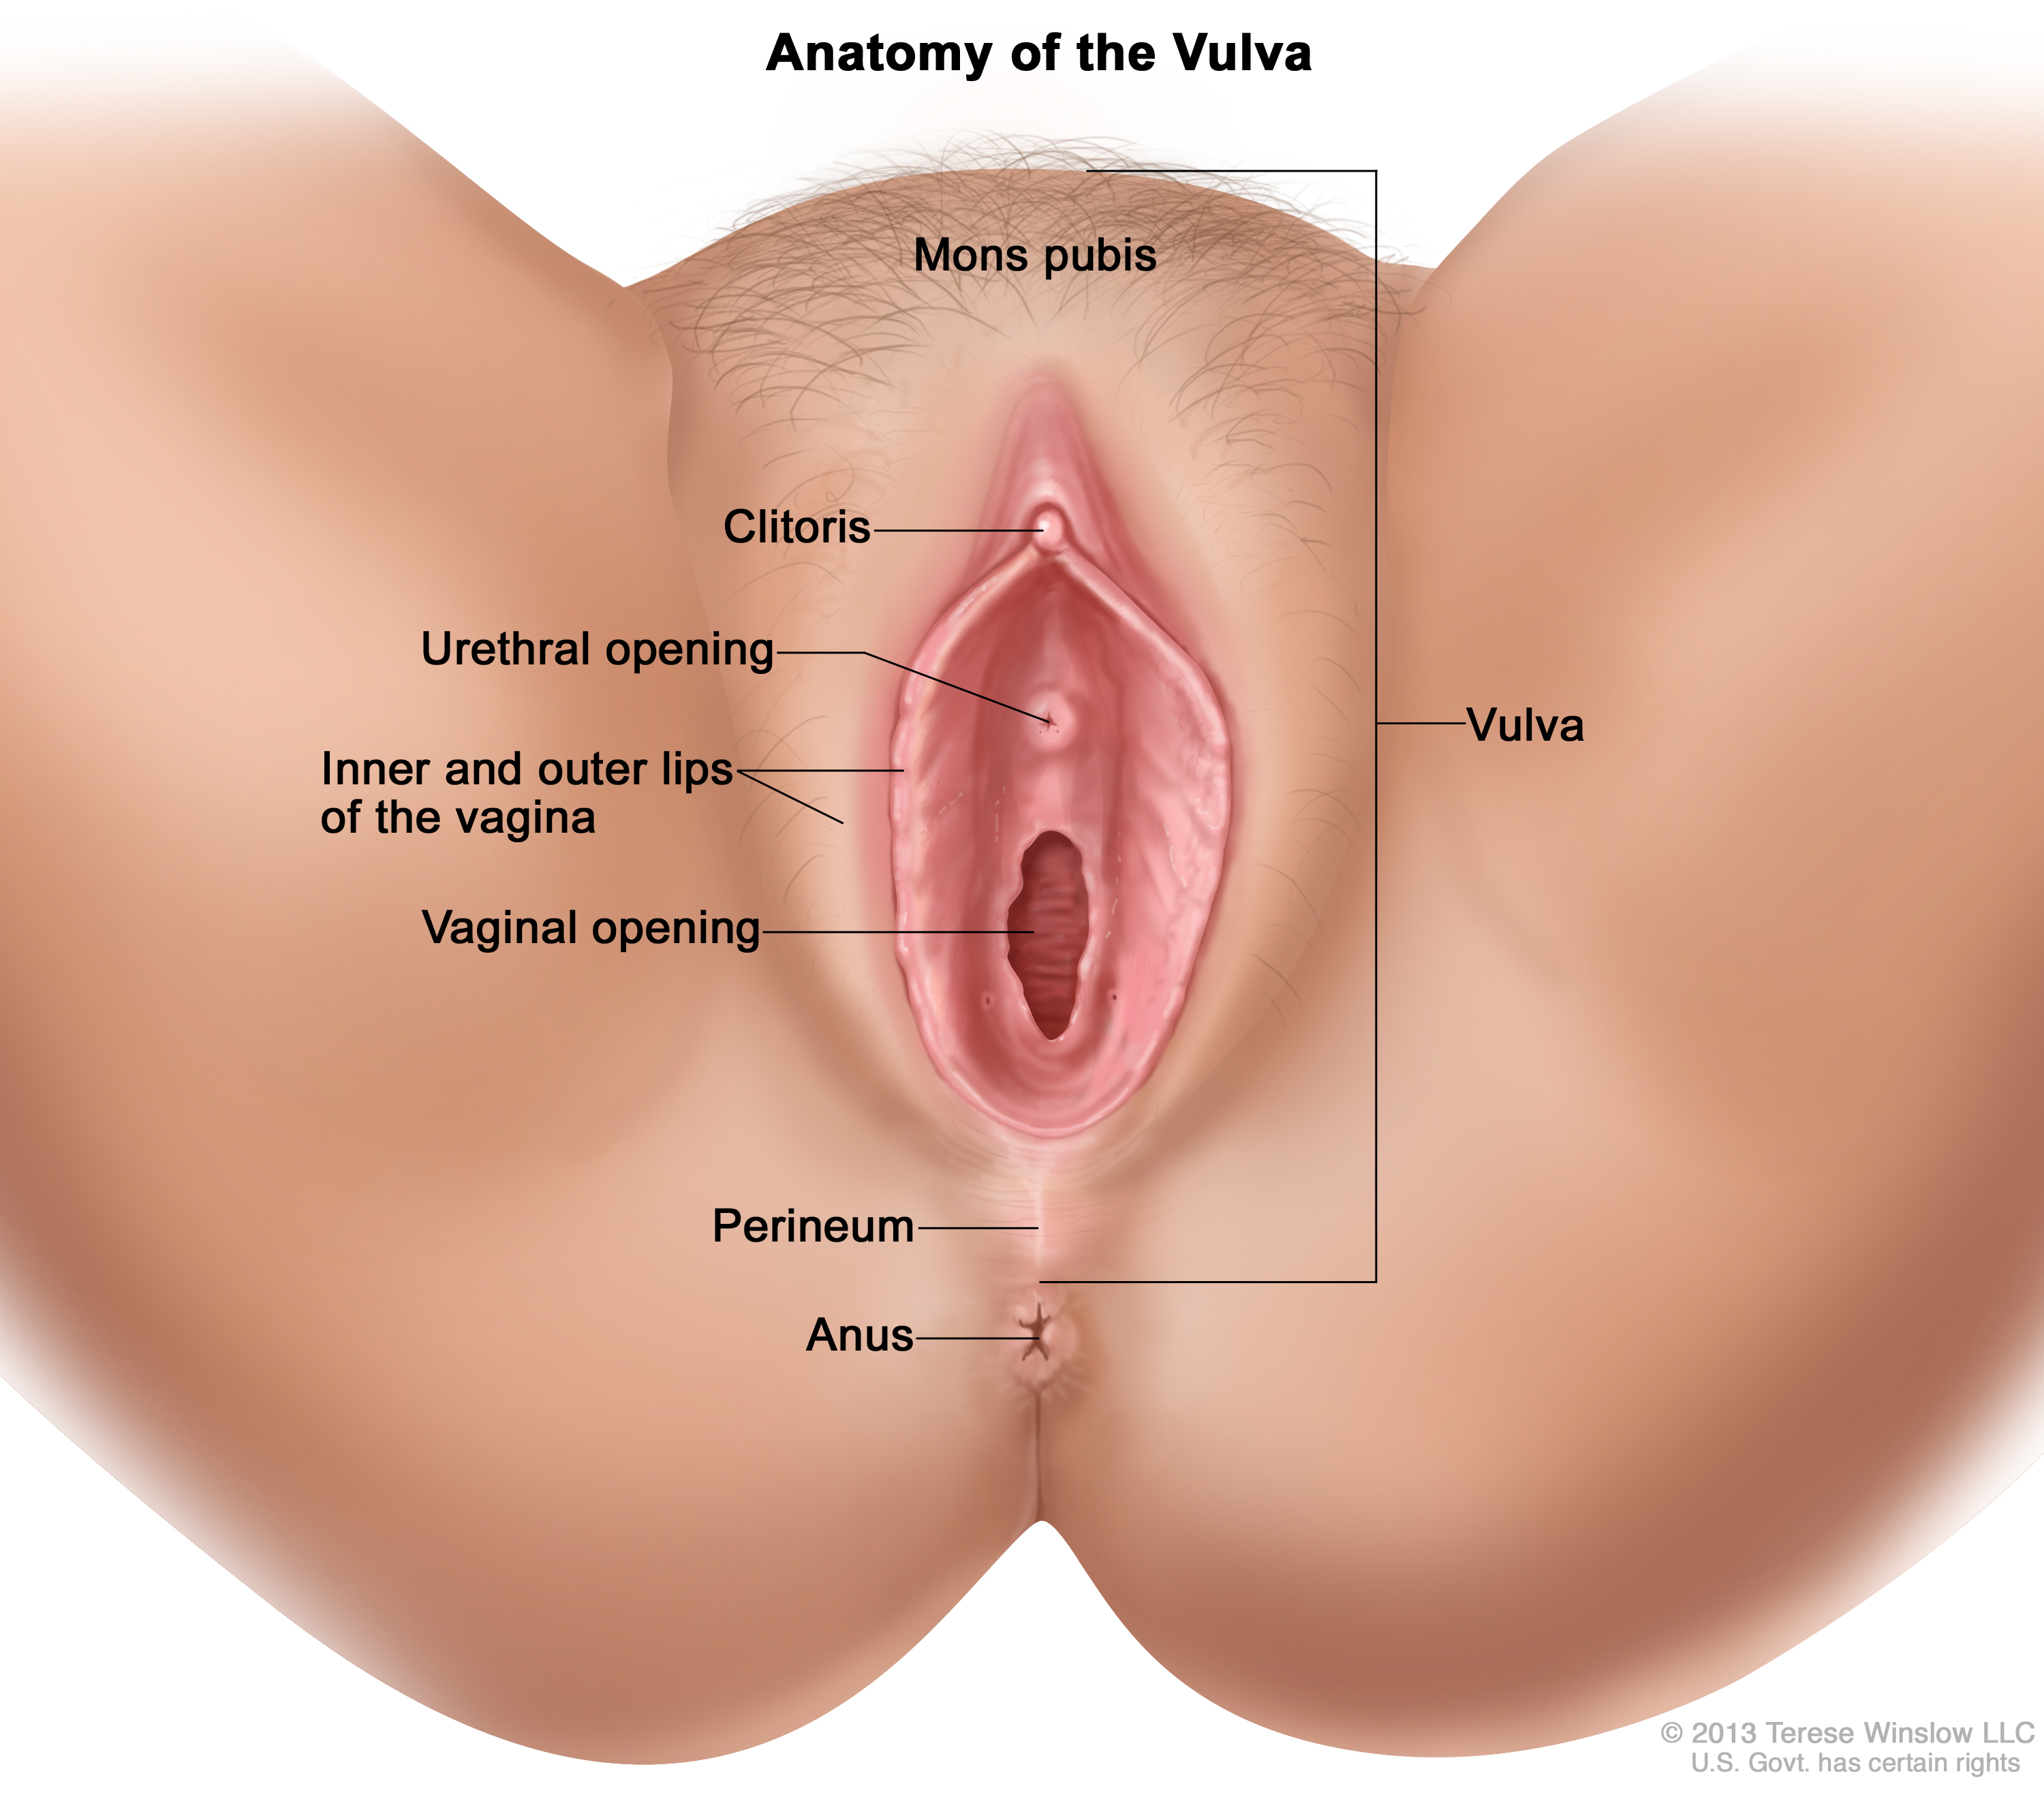 Anatomy of the vulva; drawing shows the mons pubis, clitoris, urethral ...